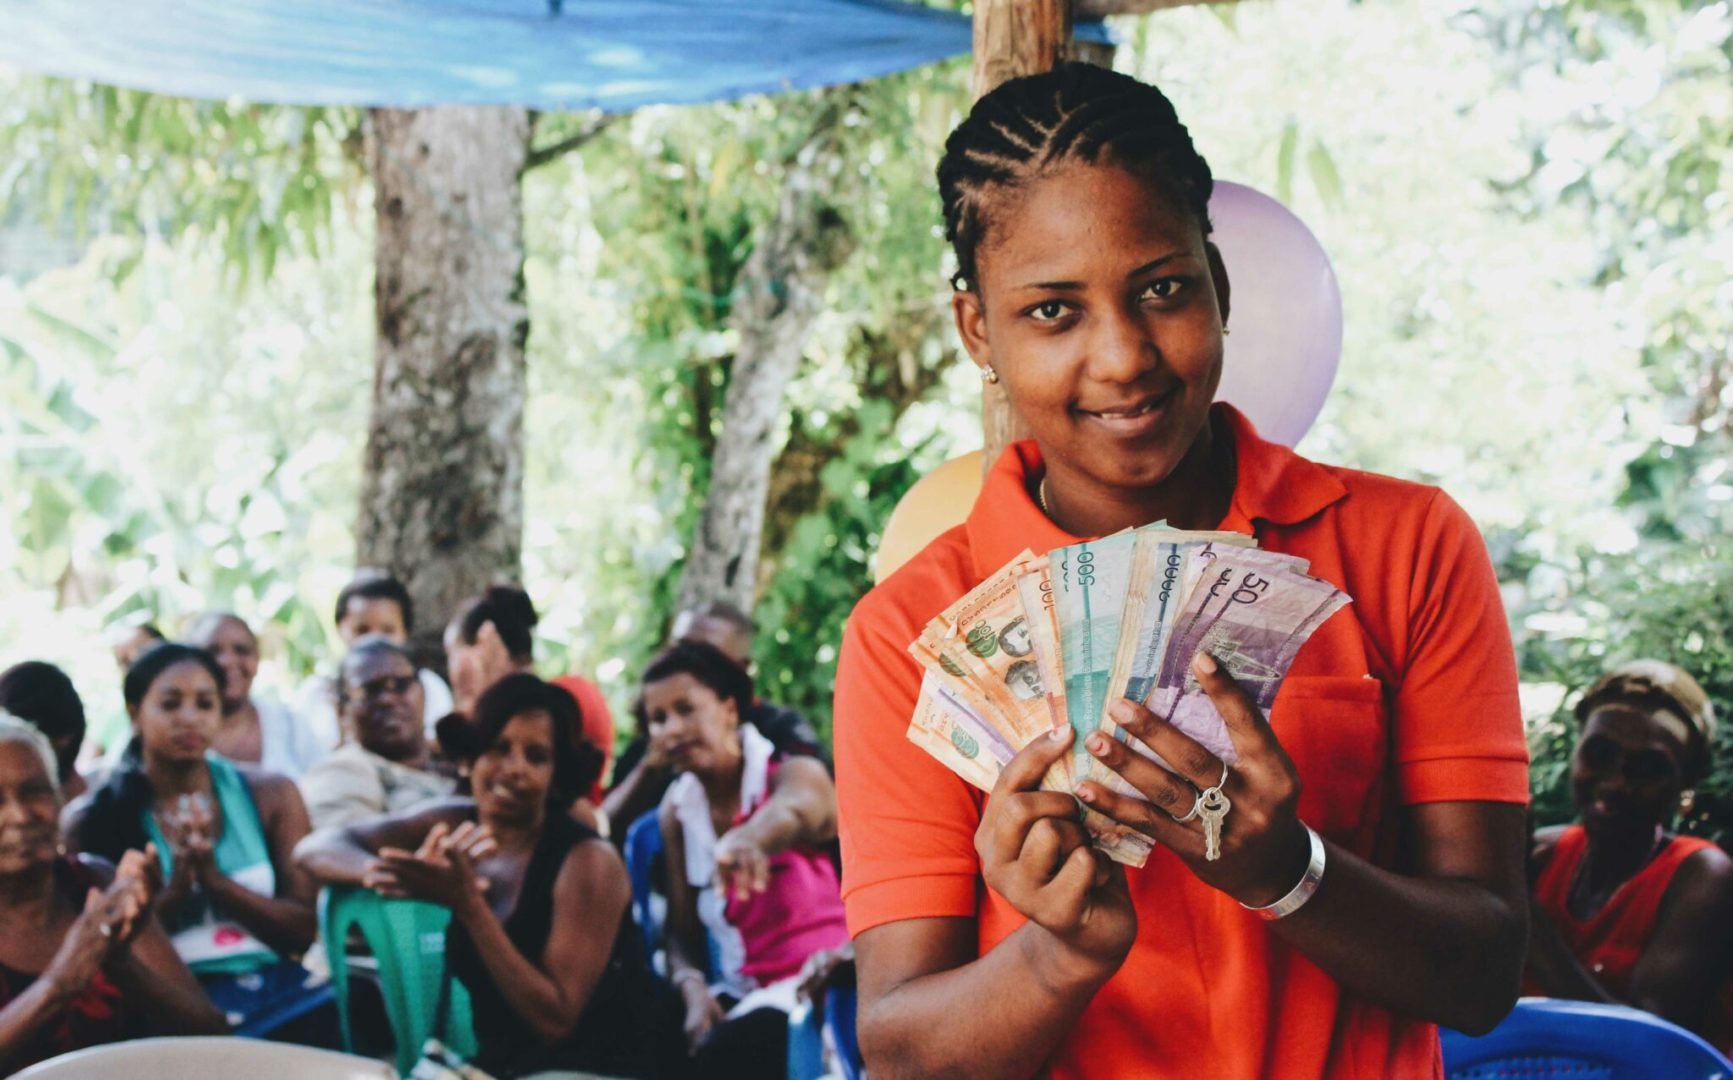 A participant of the Guapachita Savings Group counts her savings at the end of a savings cycle in the Dominican Republic.